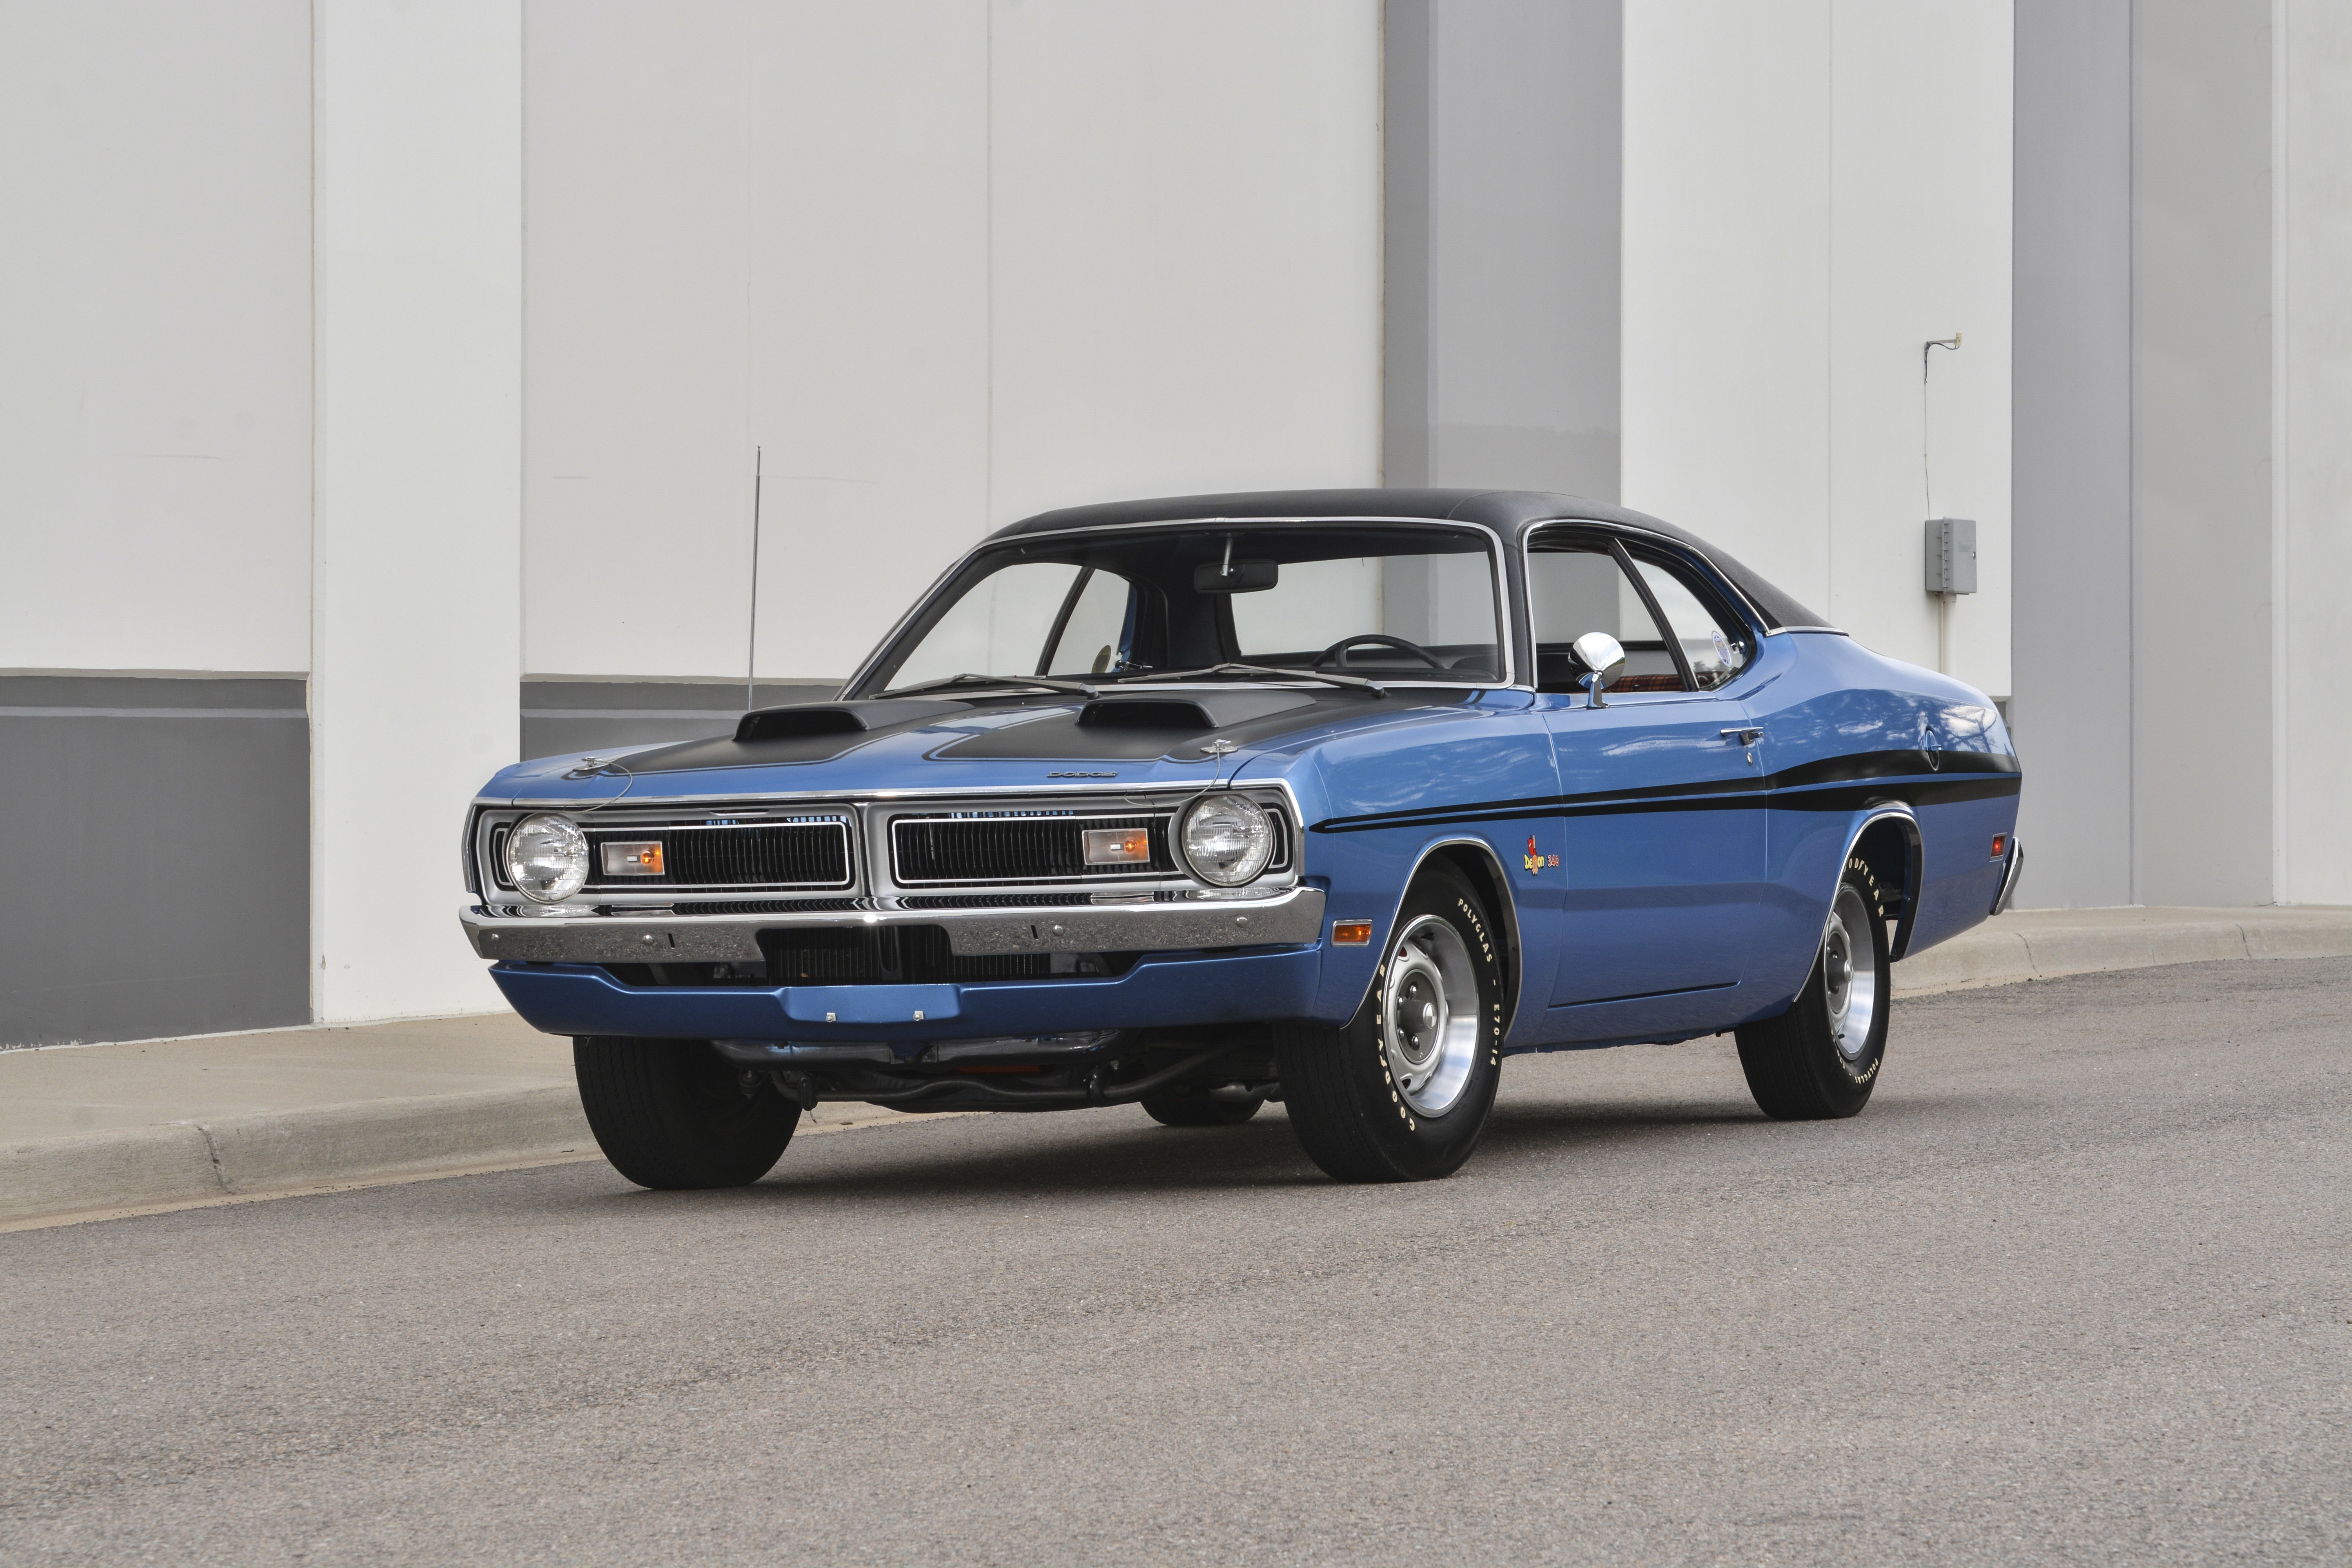 1971 Dodge Demon GSS Muscle Classic Old Original USA  01 wallpaper 6000x4000